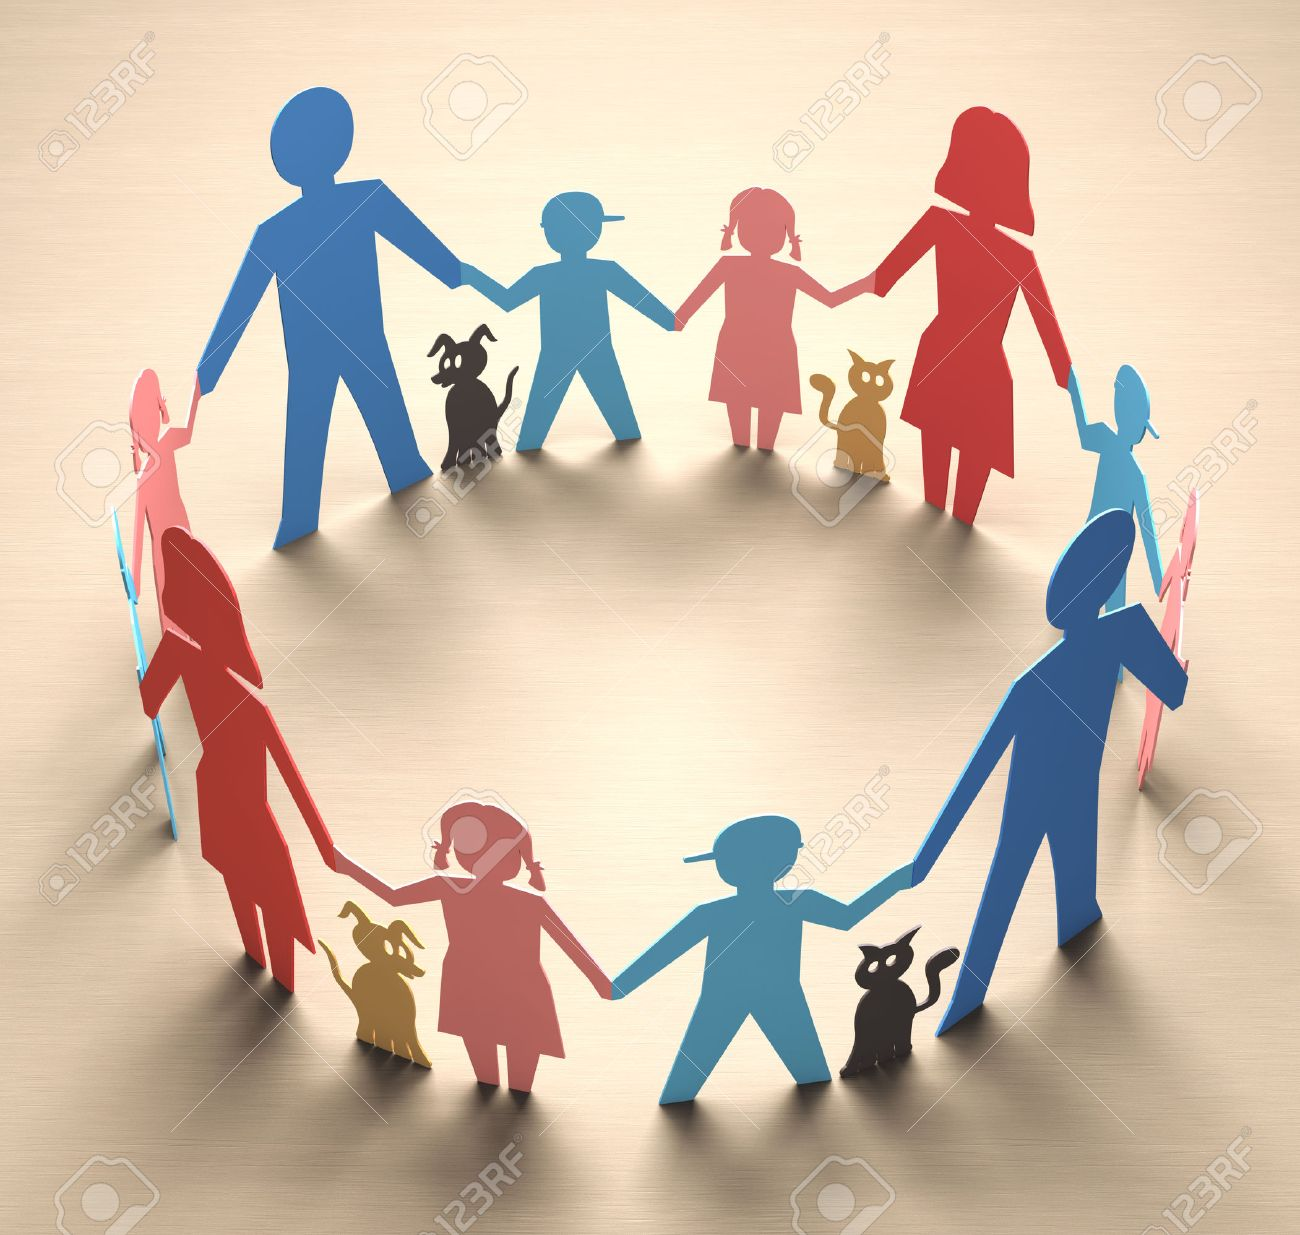 Happy family forming a circle of unity - 23008525